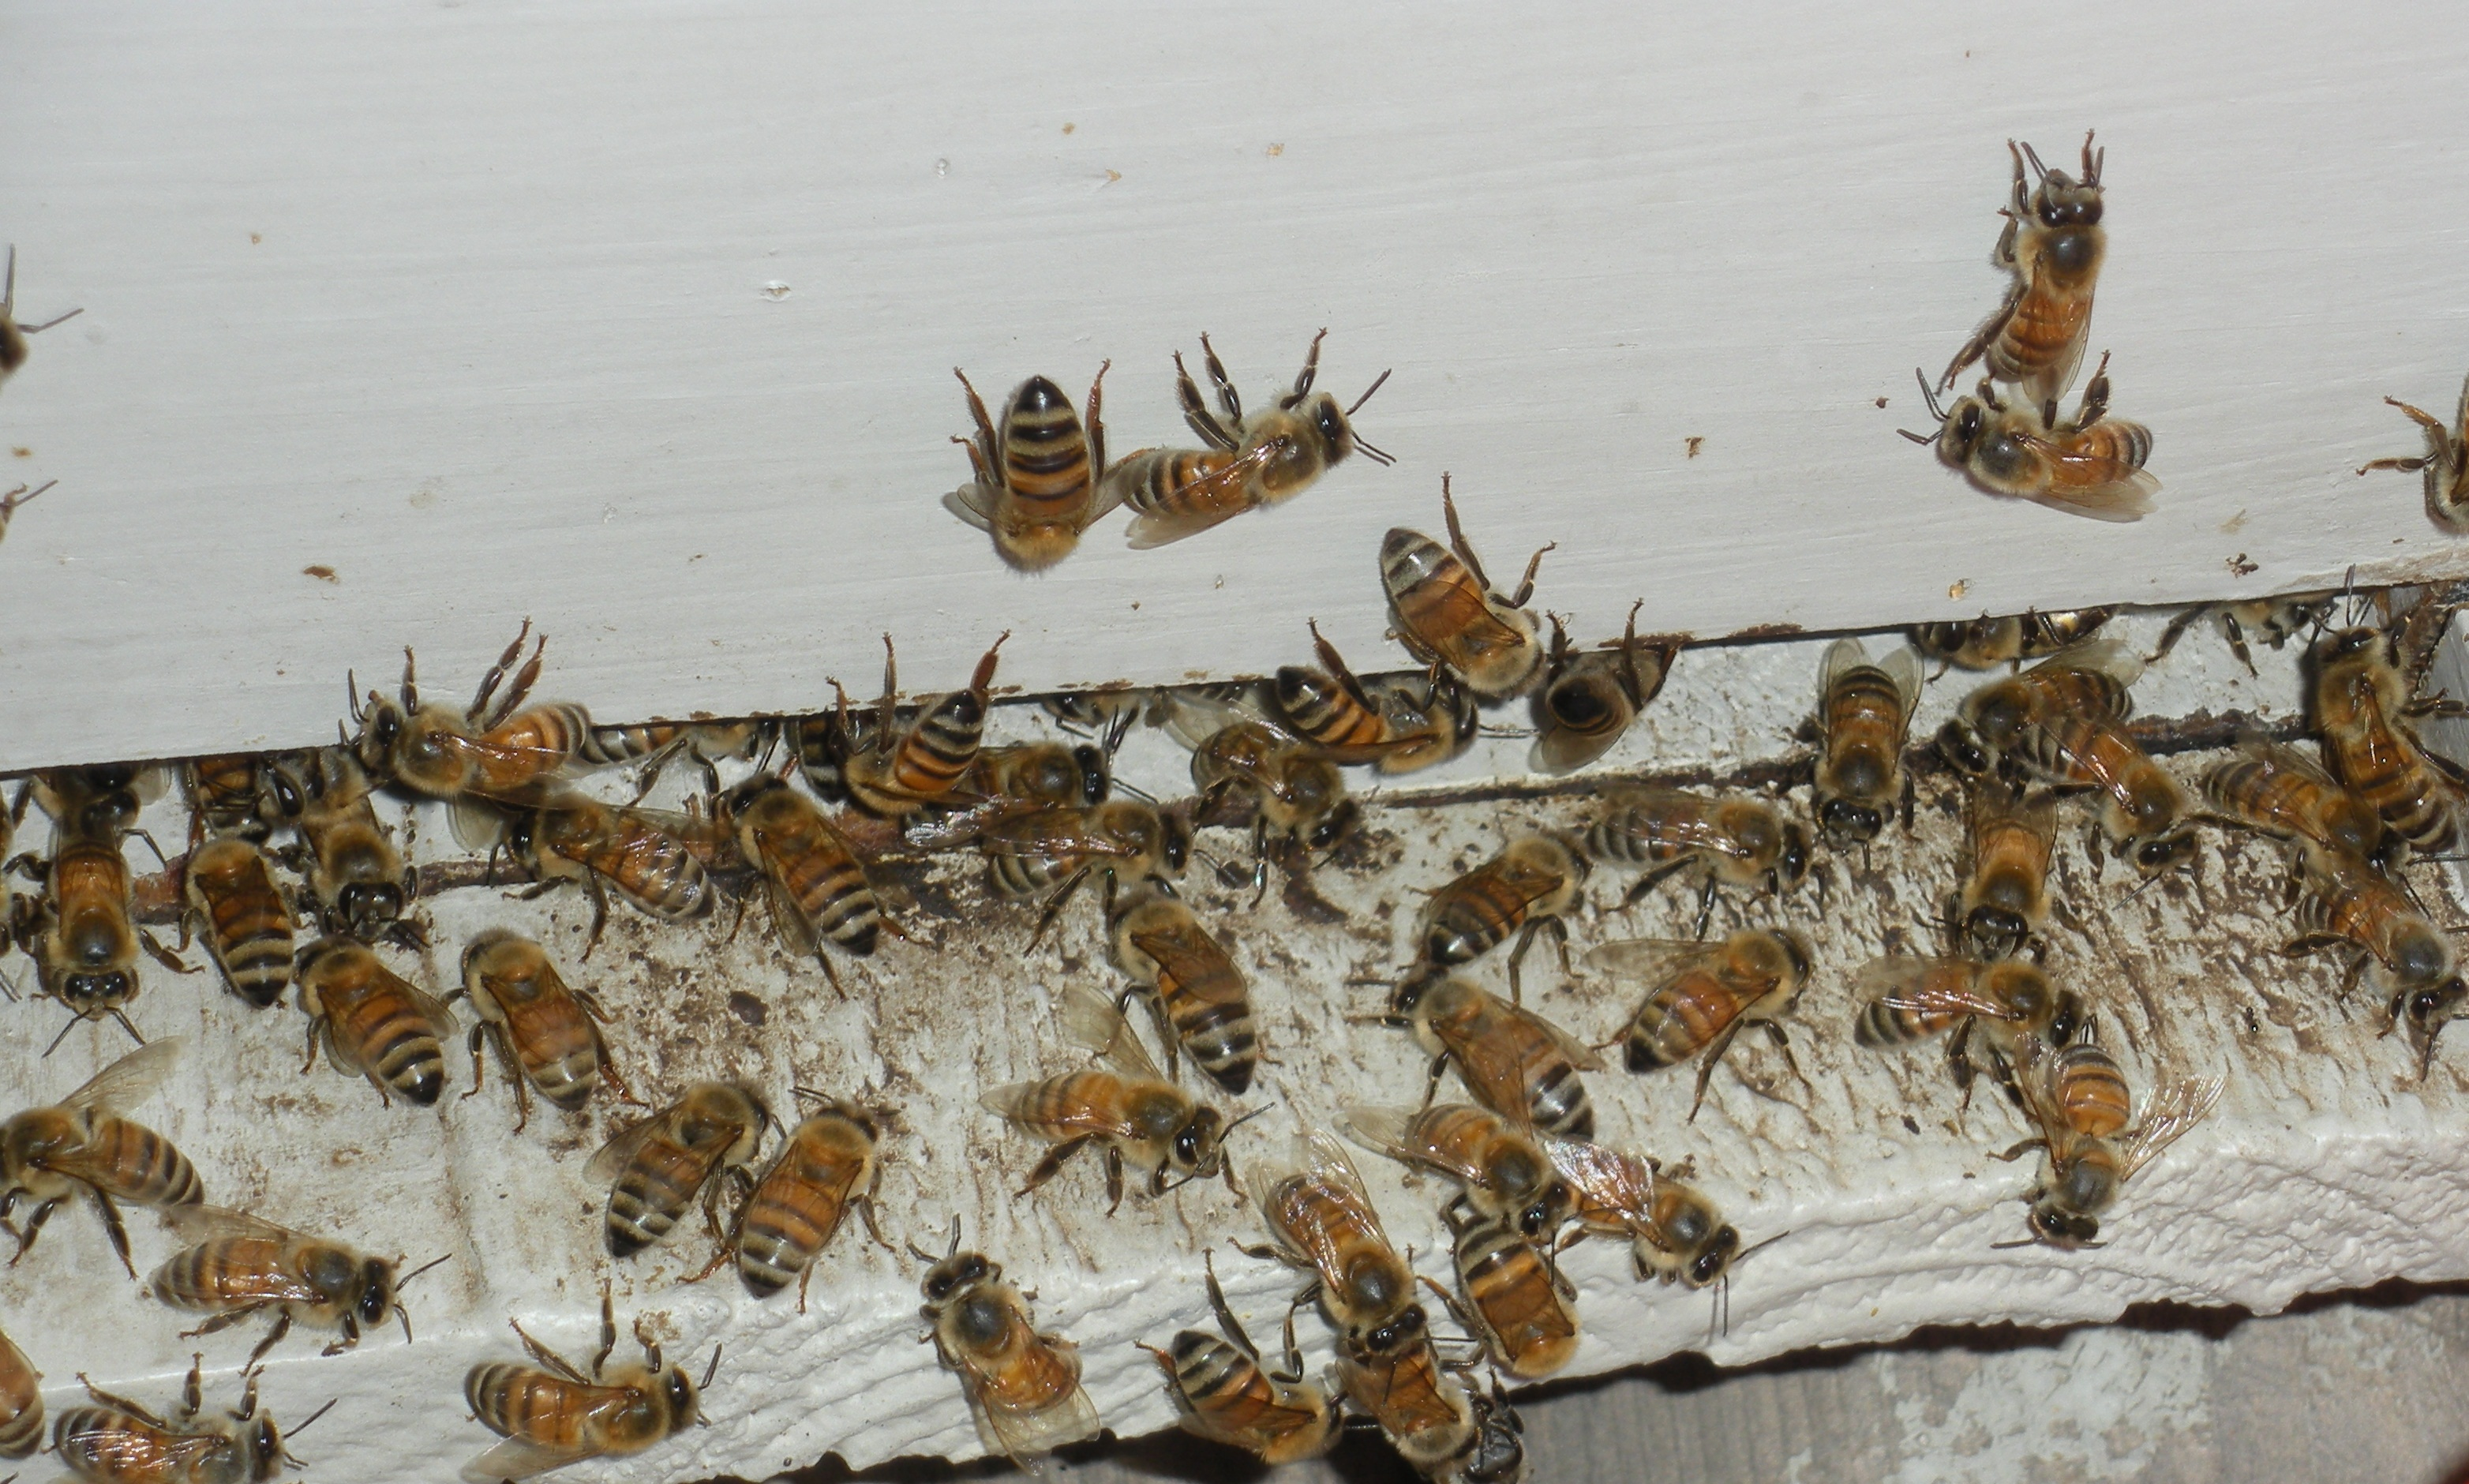 My Honeybees going into there bee hive